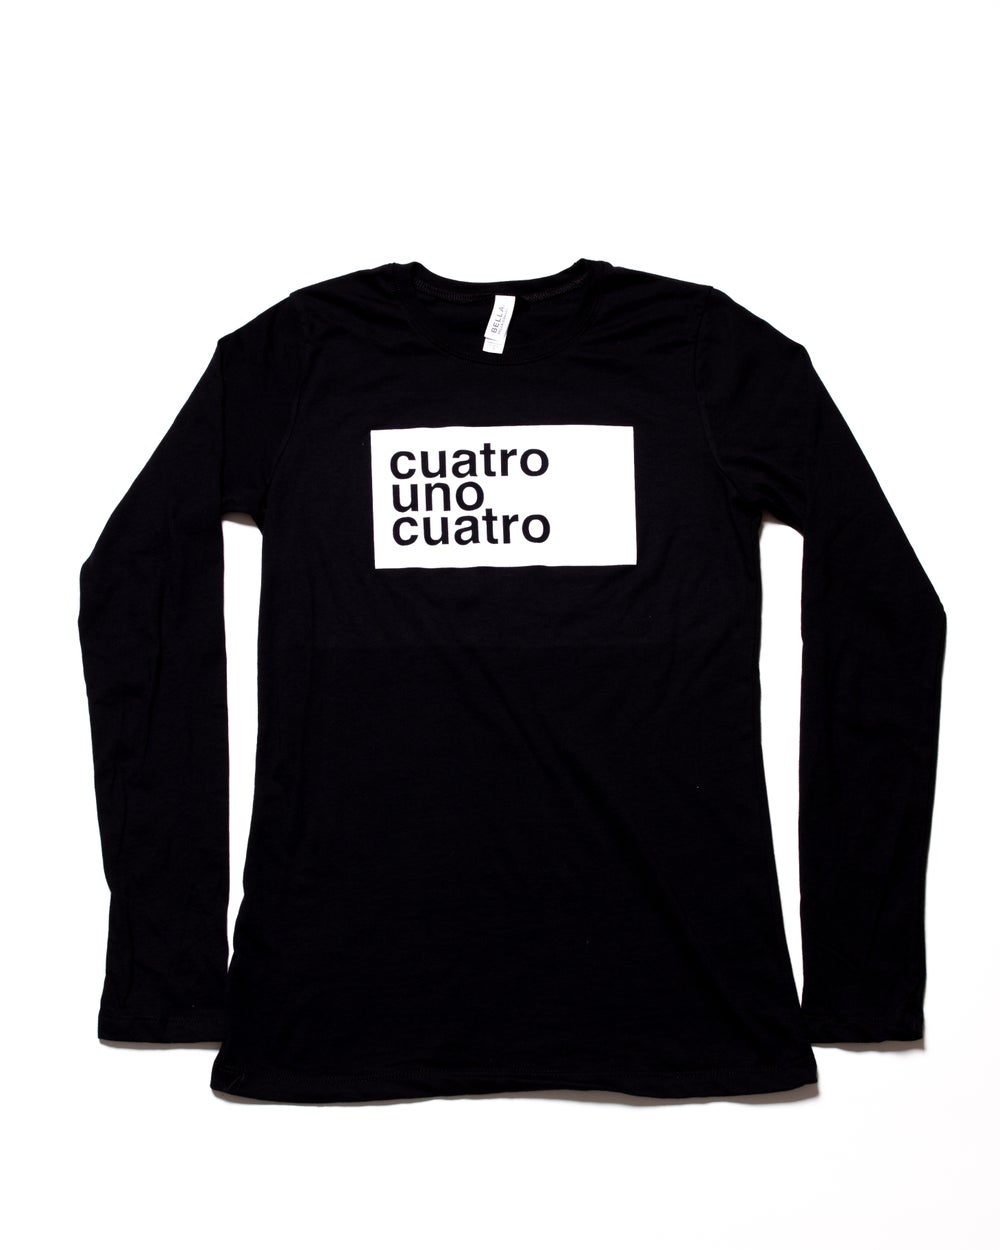 Image of CUATRO UNO CUATRO - LONG SLEEVE - WOMEN'S